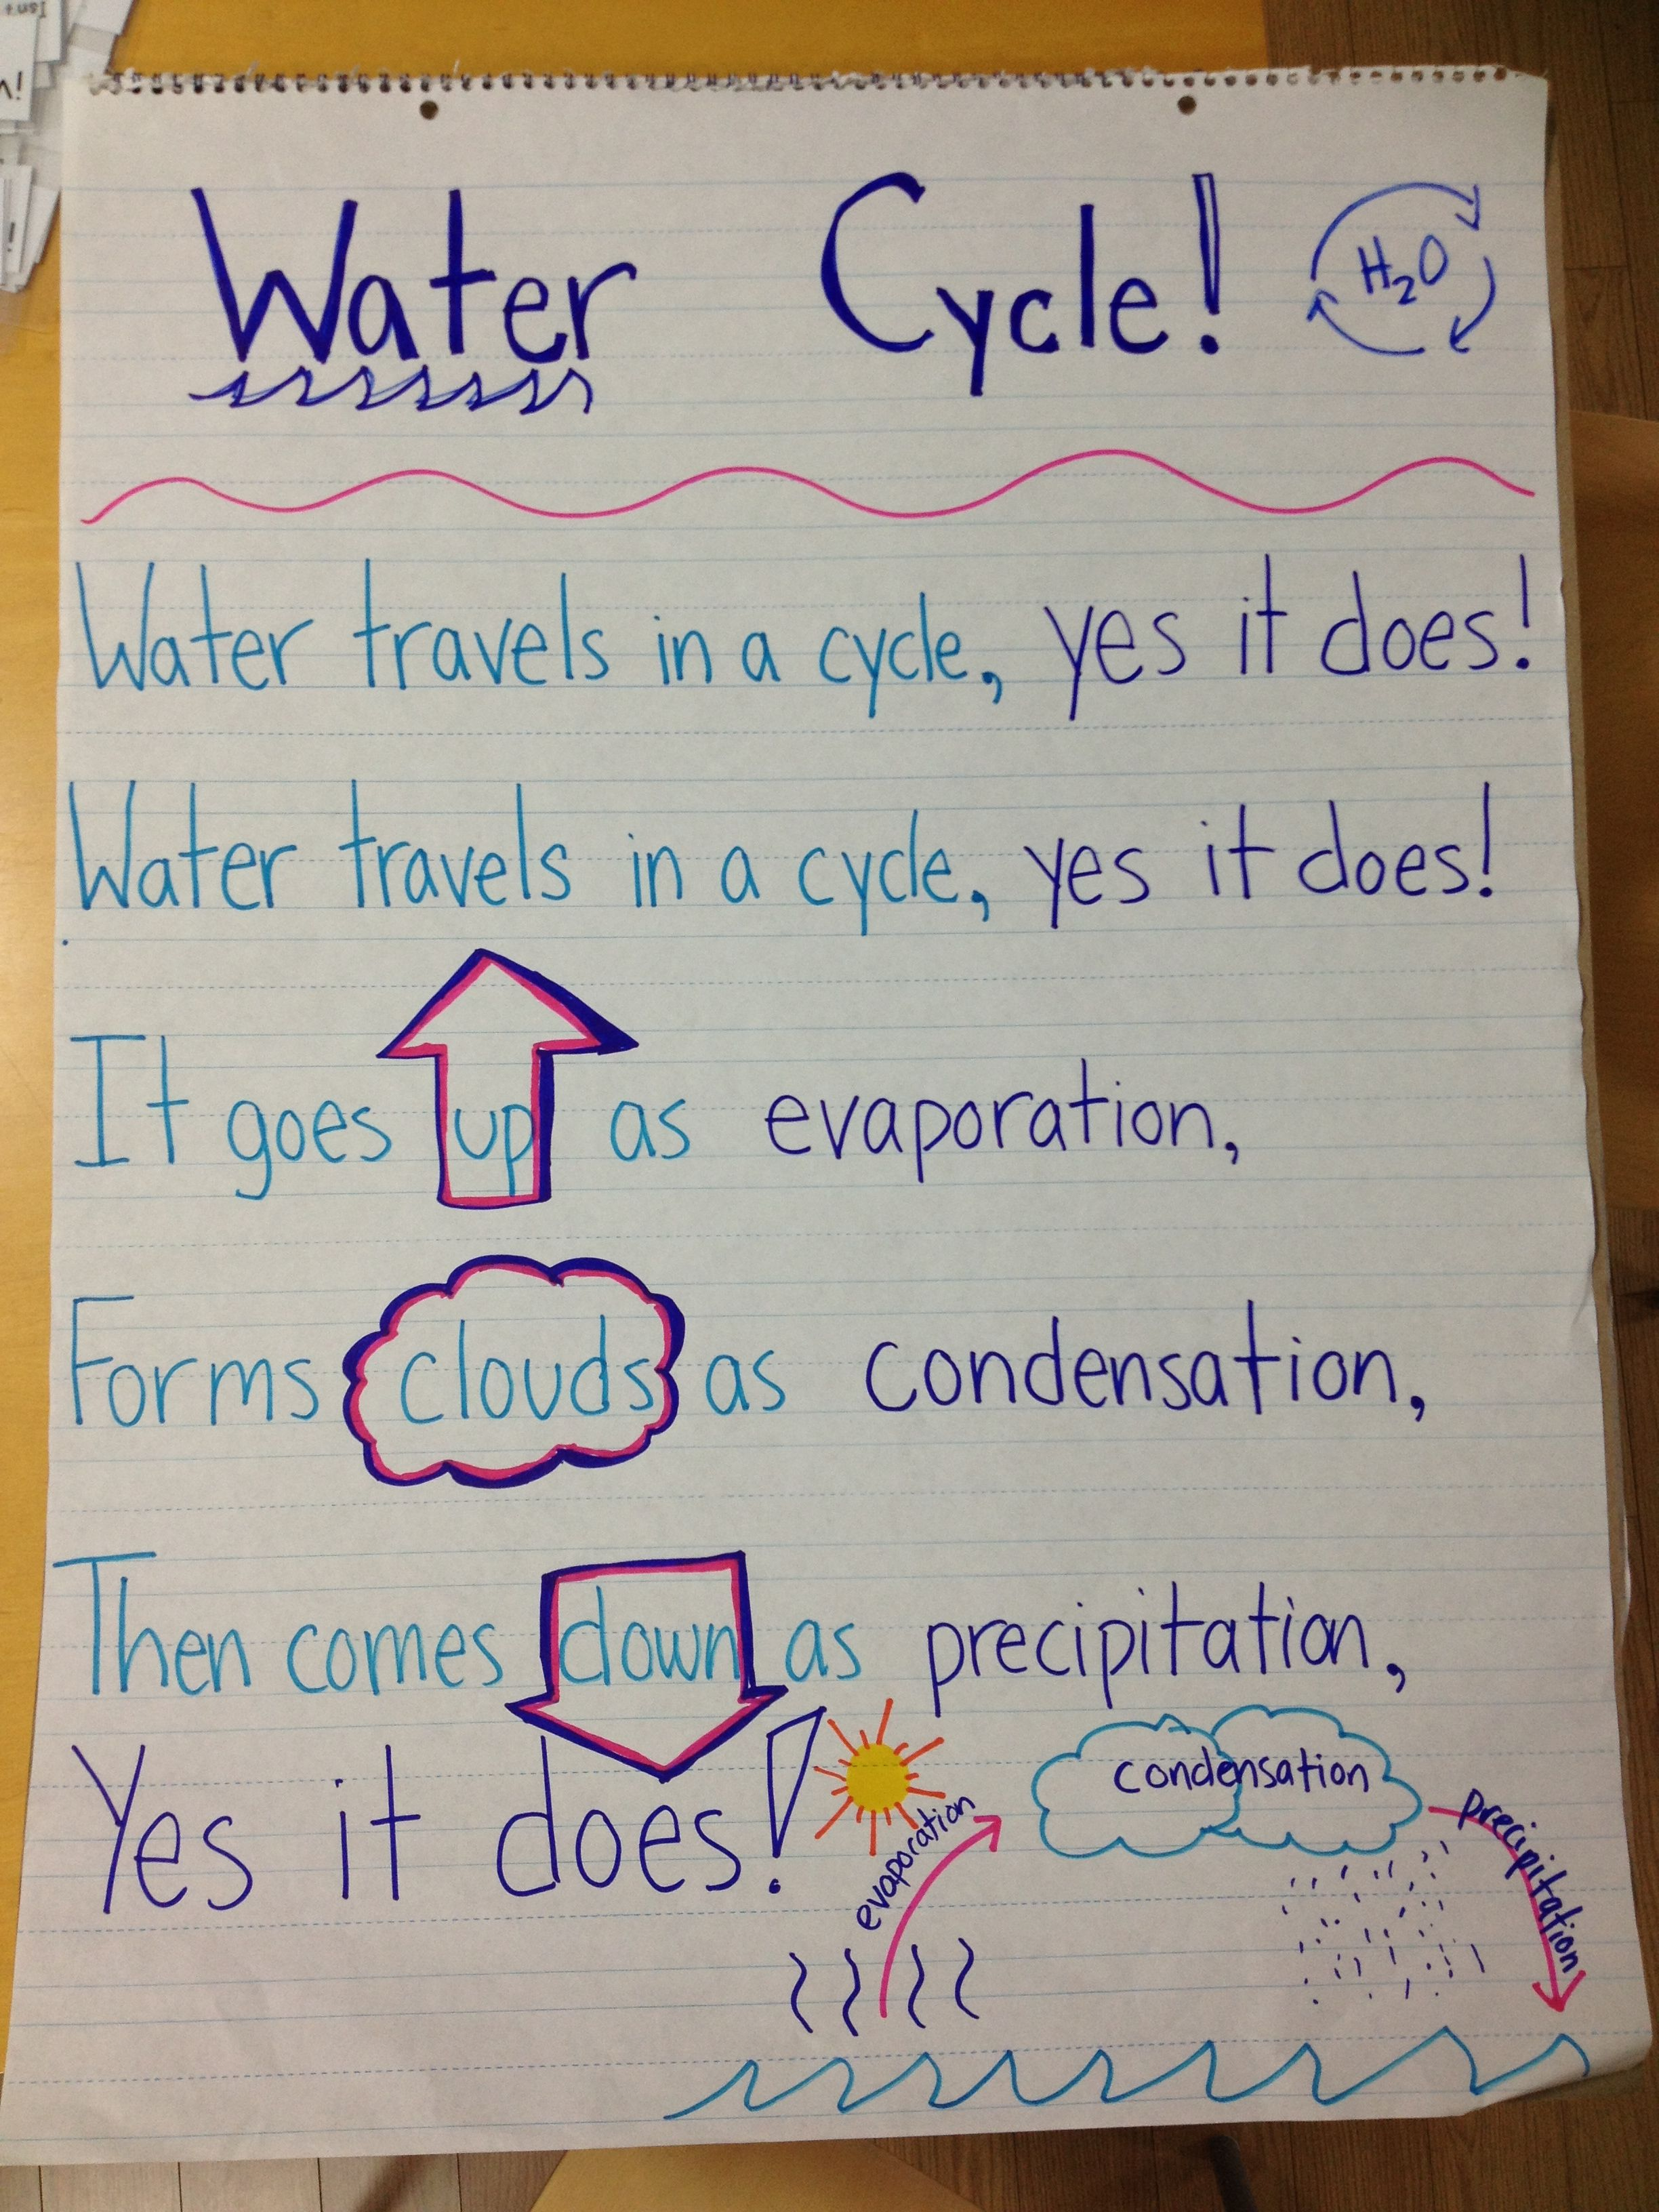 medium resolution of b576a73d4a6d40425e7dbf69b14bcdcd jpg 1 200 1 600 pixels water cycle song water cycle project water